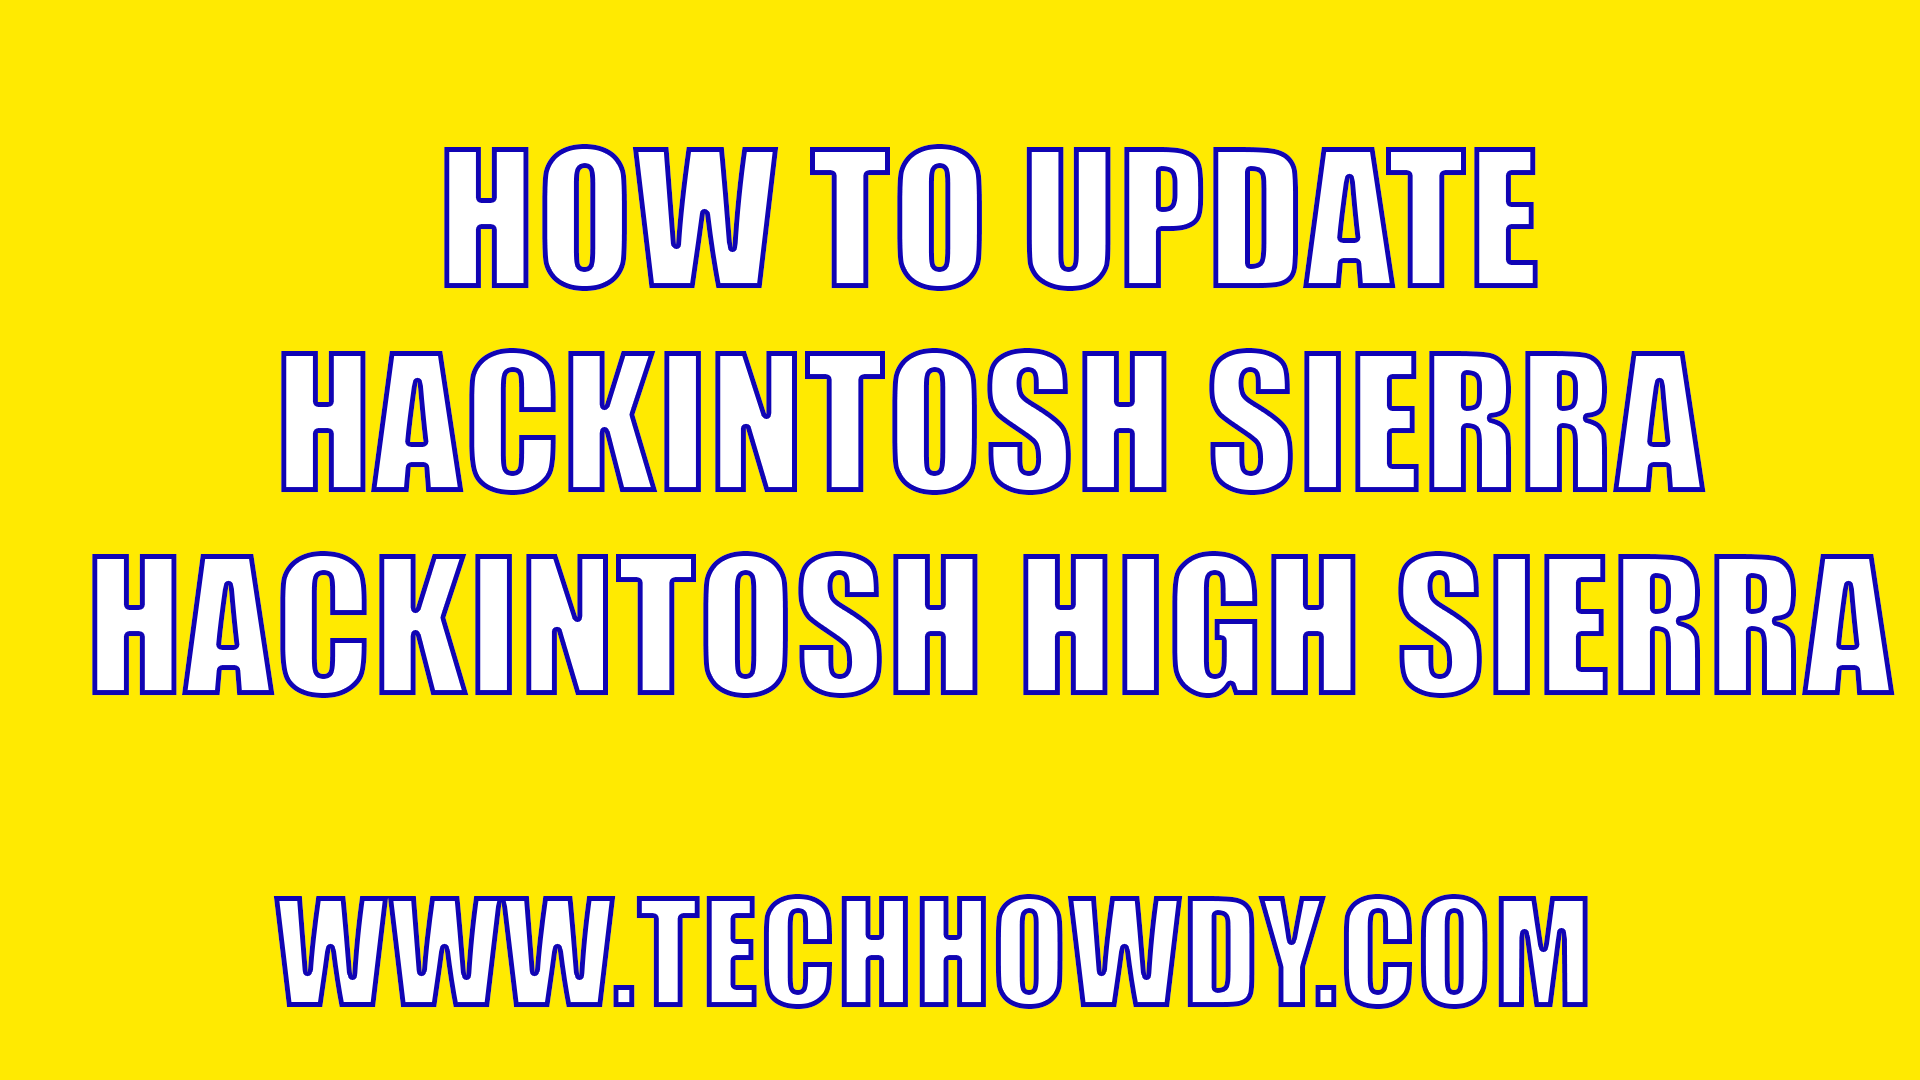 Process to Update Hackintosh macOS Sierra to Hackintosh